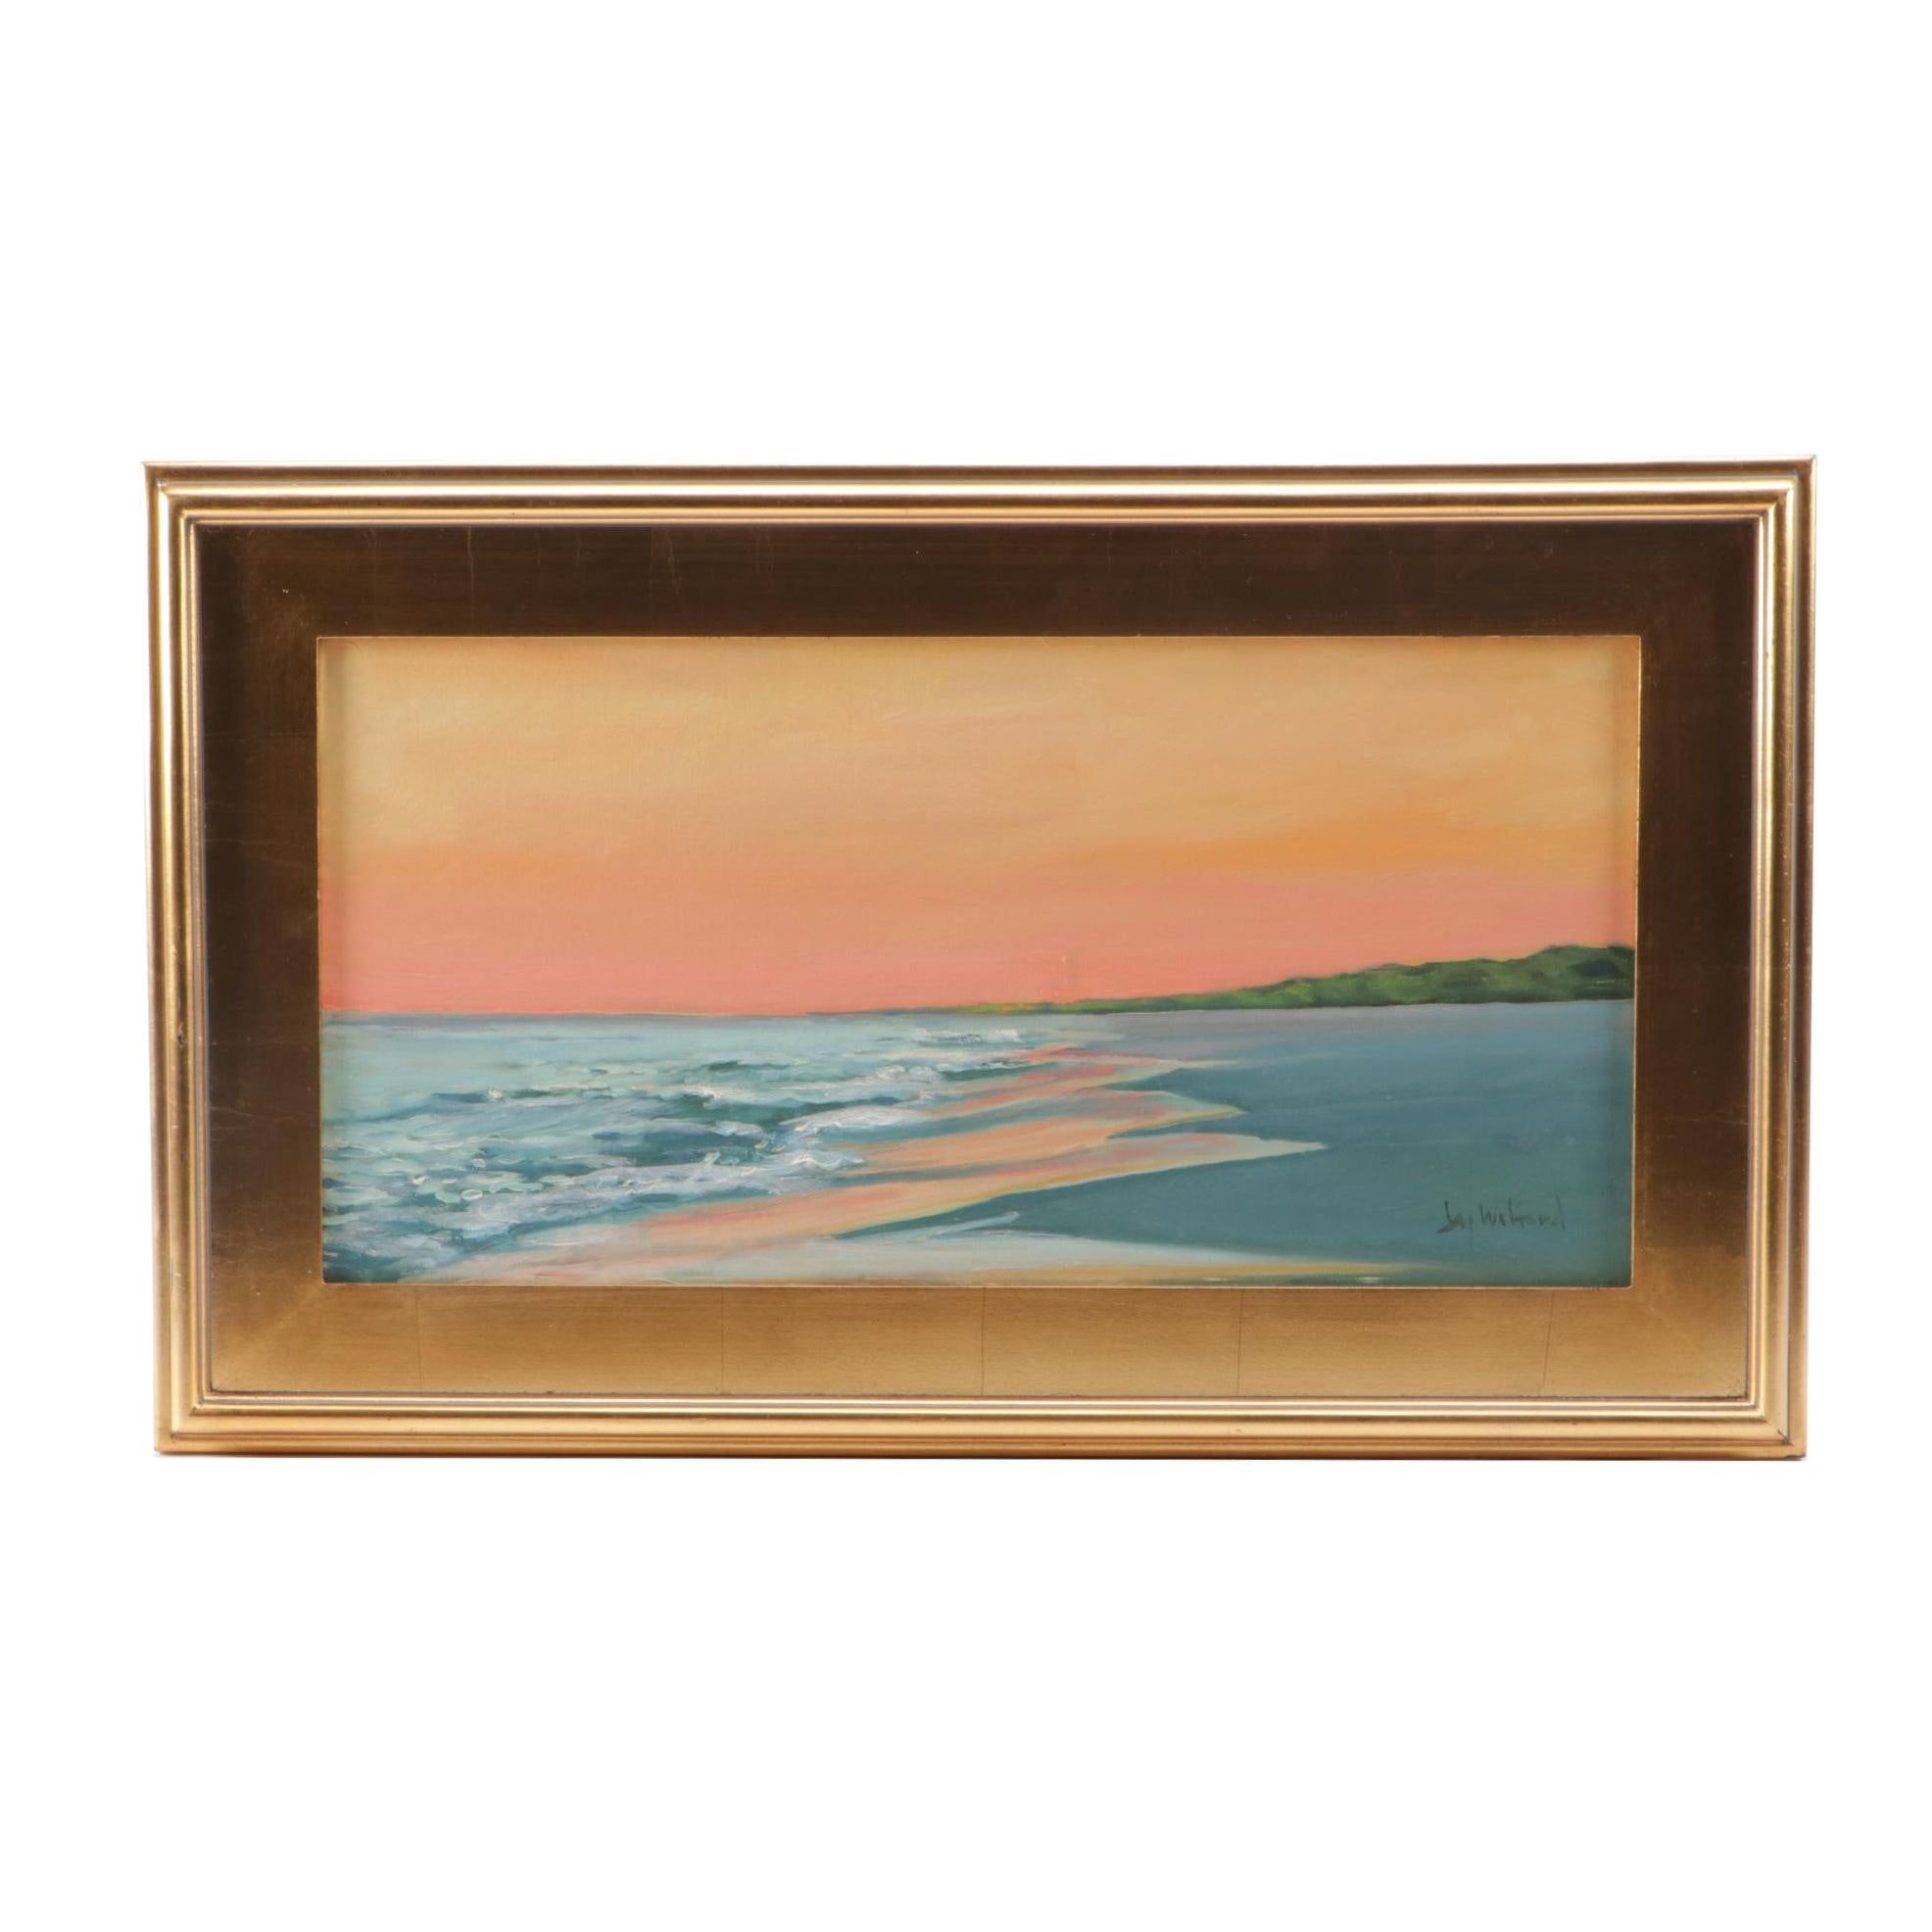 Jay Wilford Oil Painting of Beach Scene